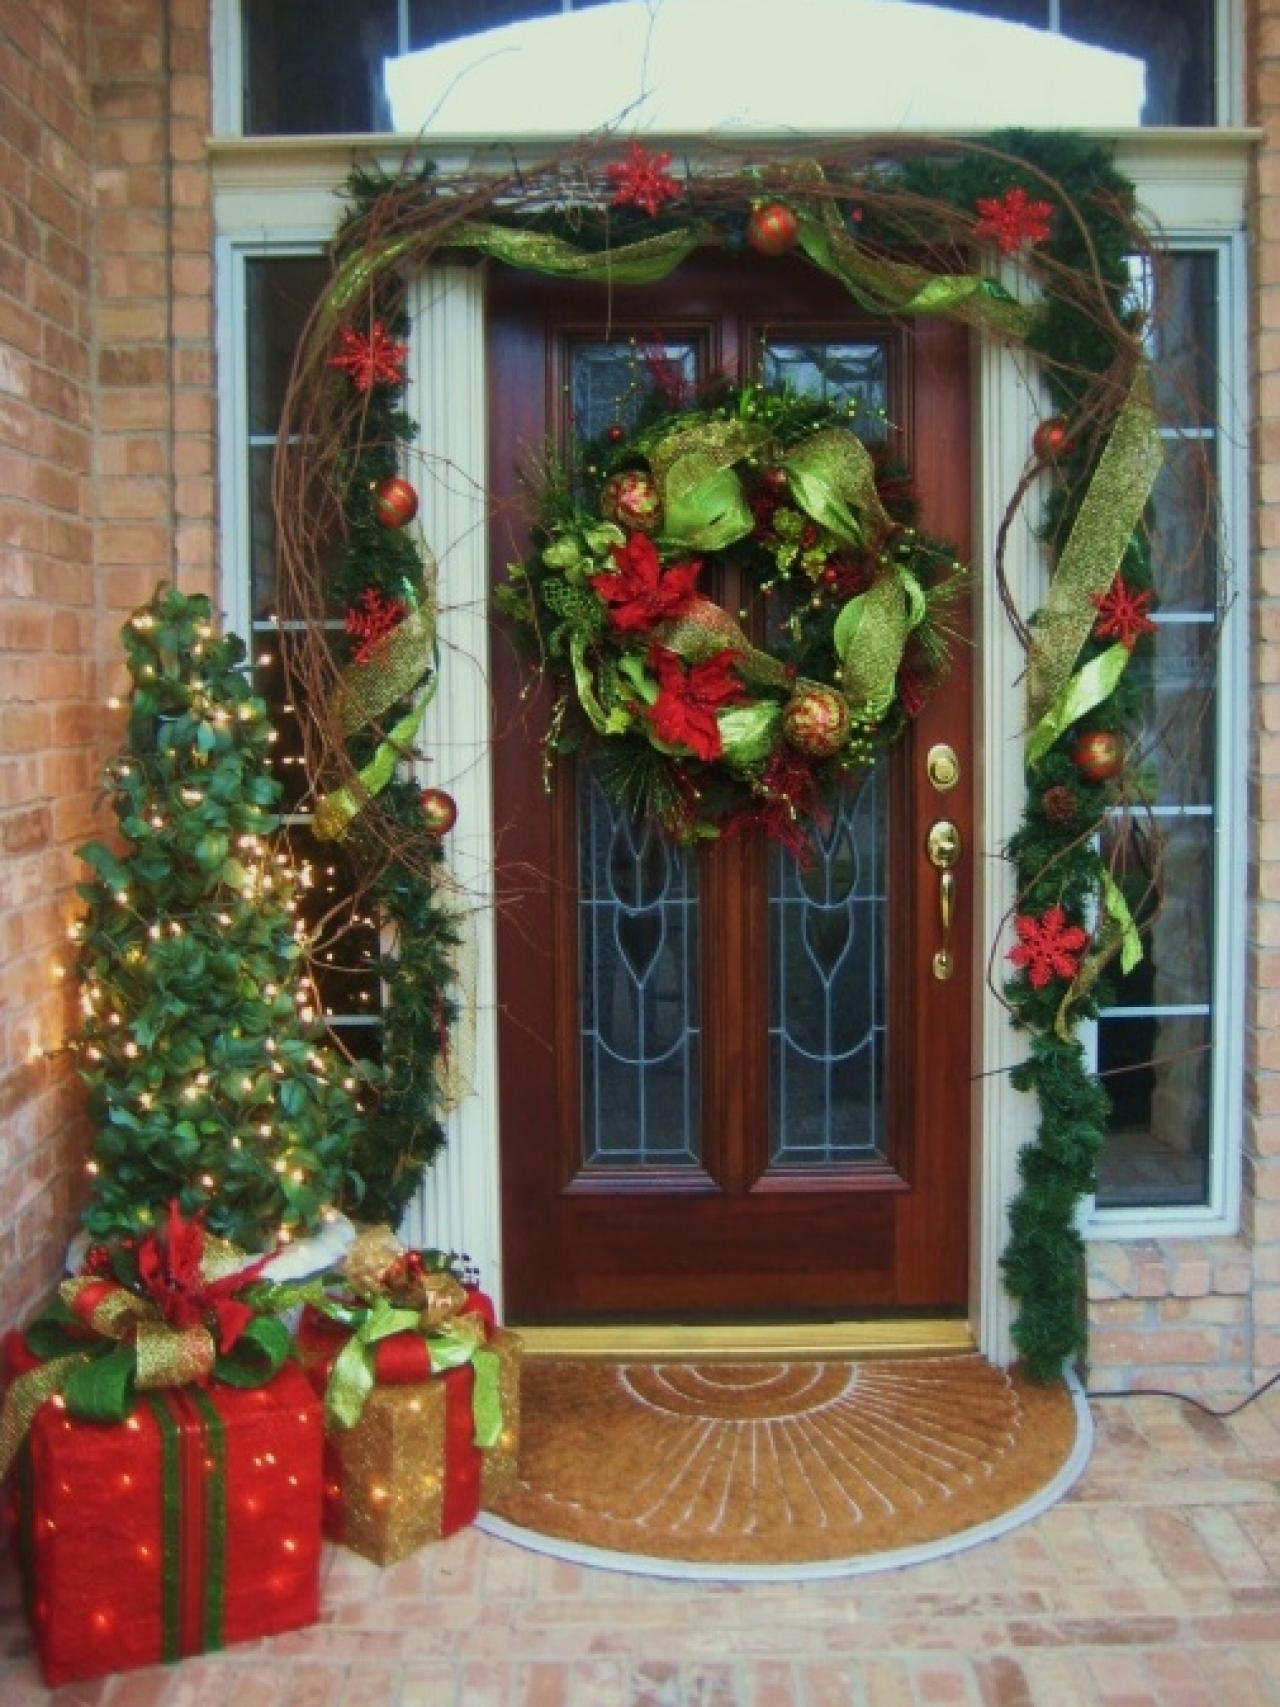 Christmas door decorations interior design styles and for Seasonal decorations home